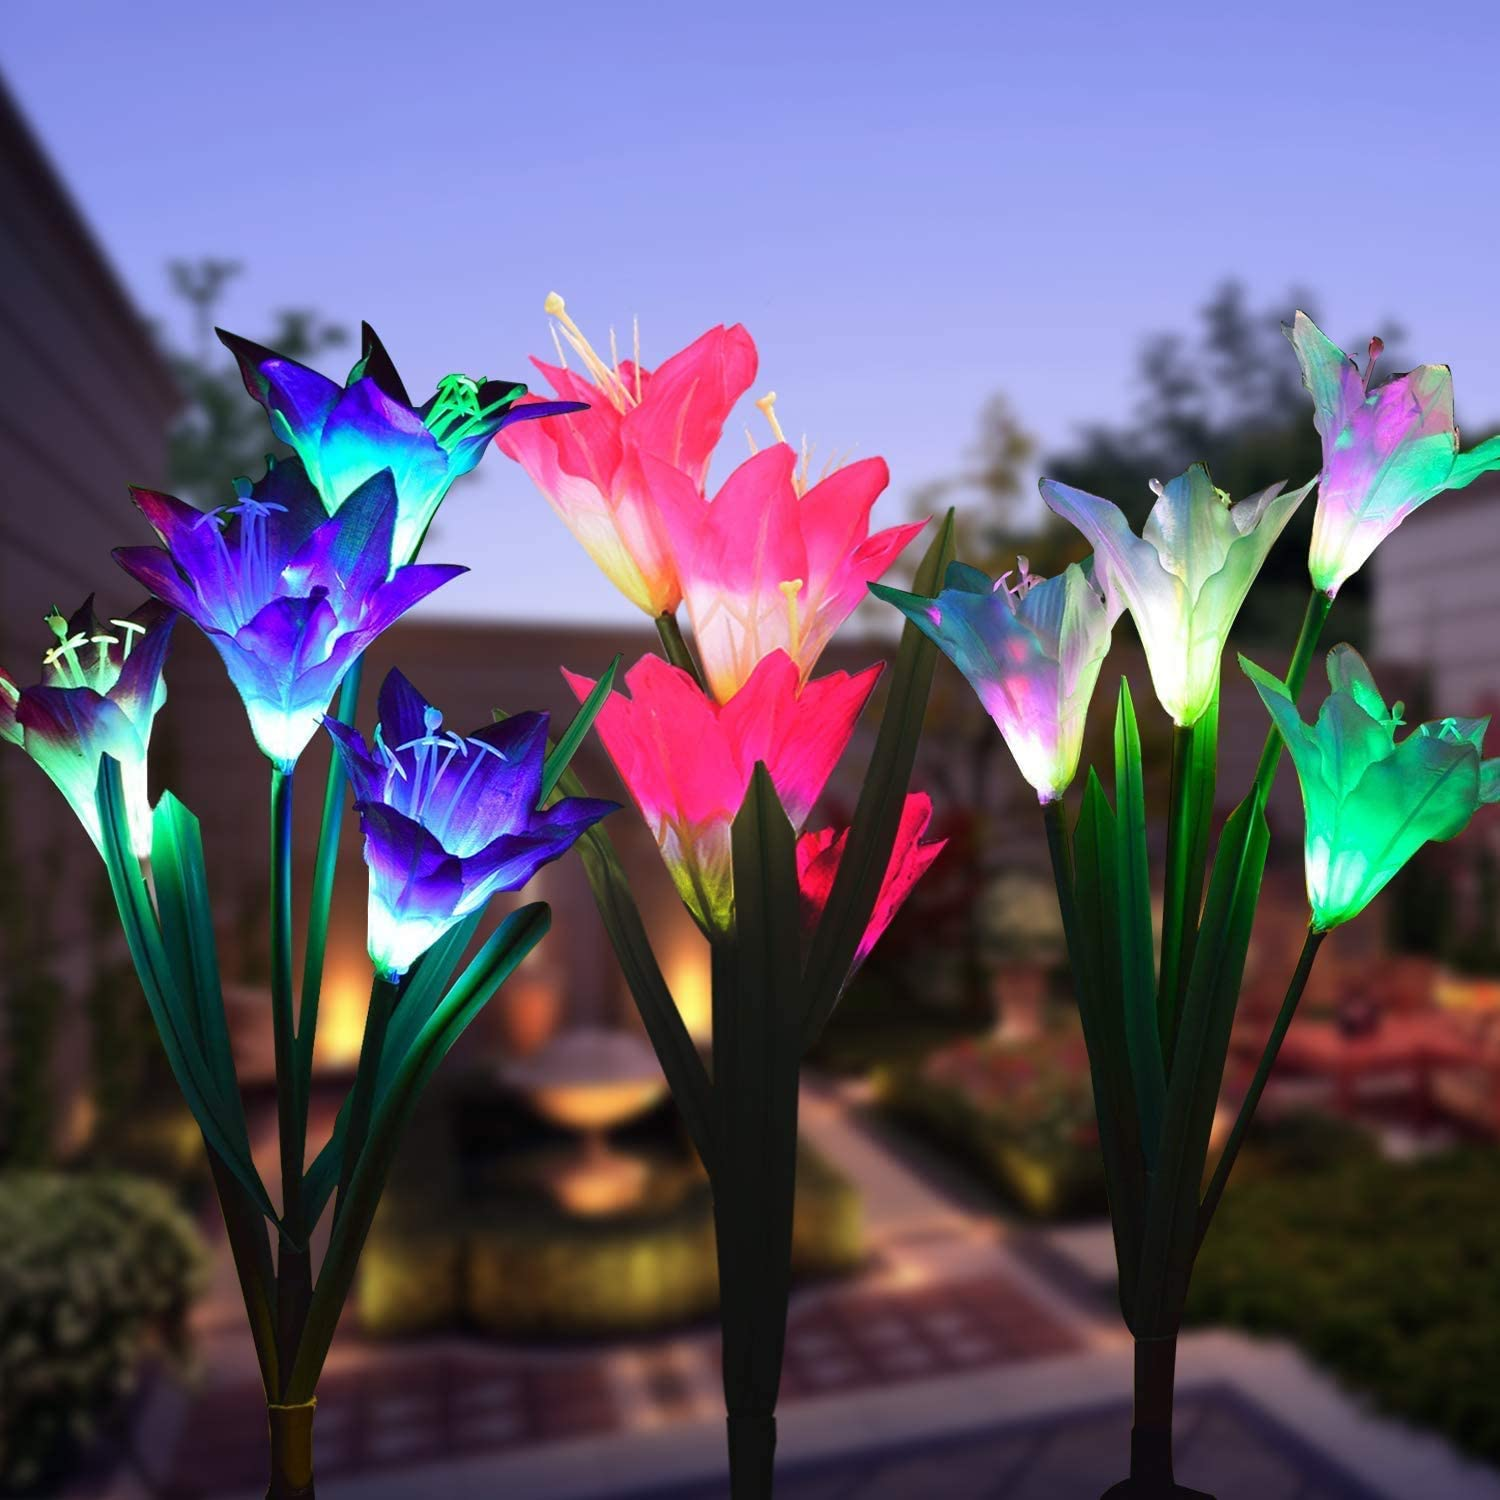 SOLARMKS 3 Pack Solar Flower Lights,Multi-Color Changing Lily Flower Outdoor Solar Lights for Patio,Garden,Yard Decoration, Bigger Flower and Wider Solar Panel